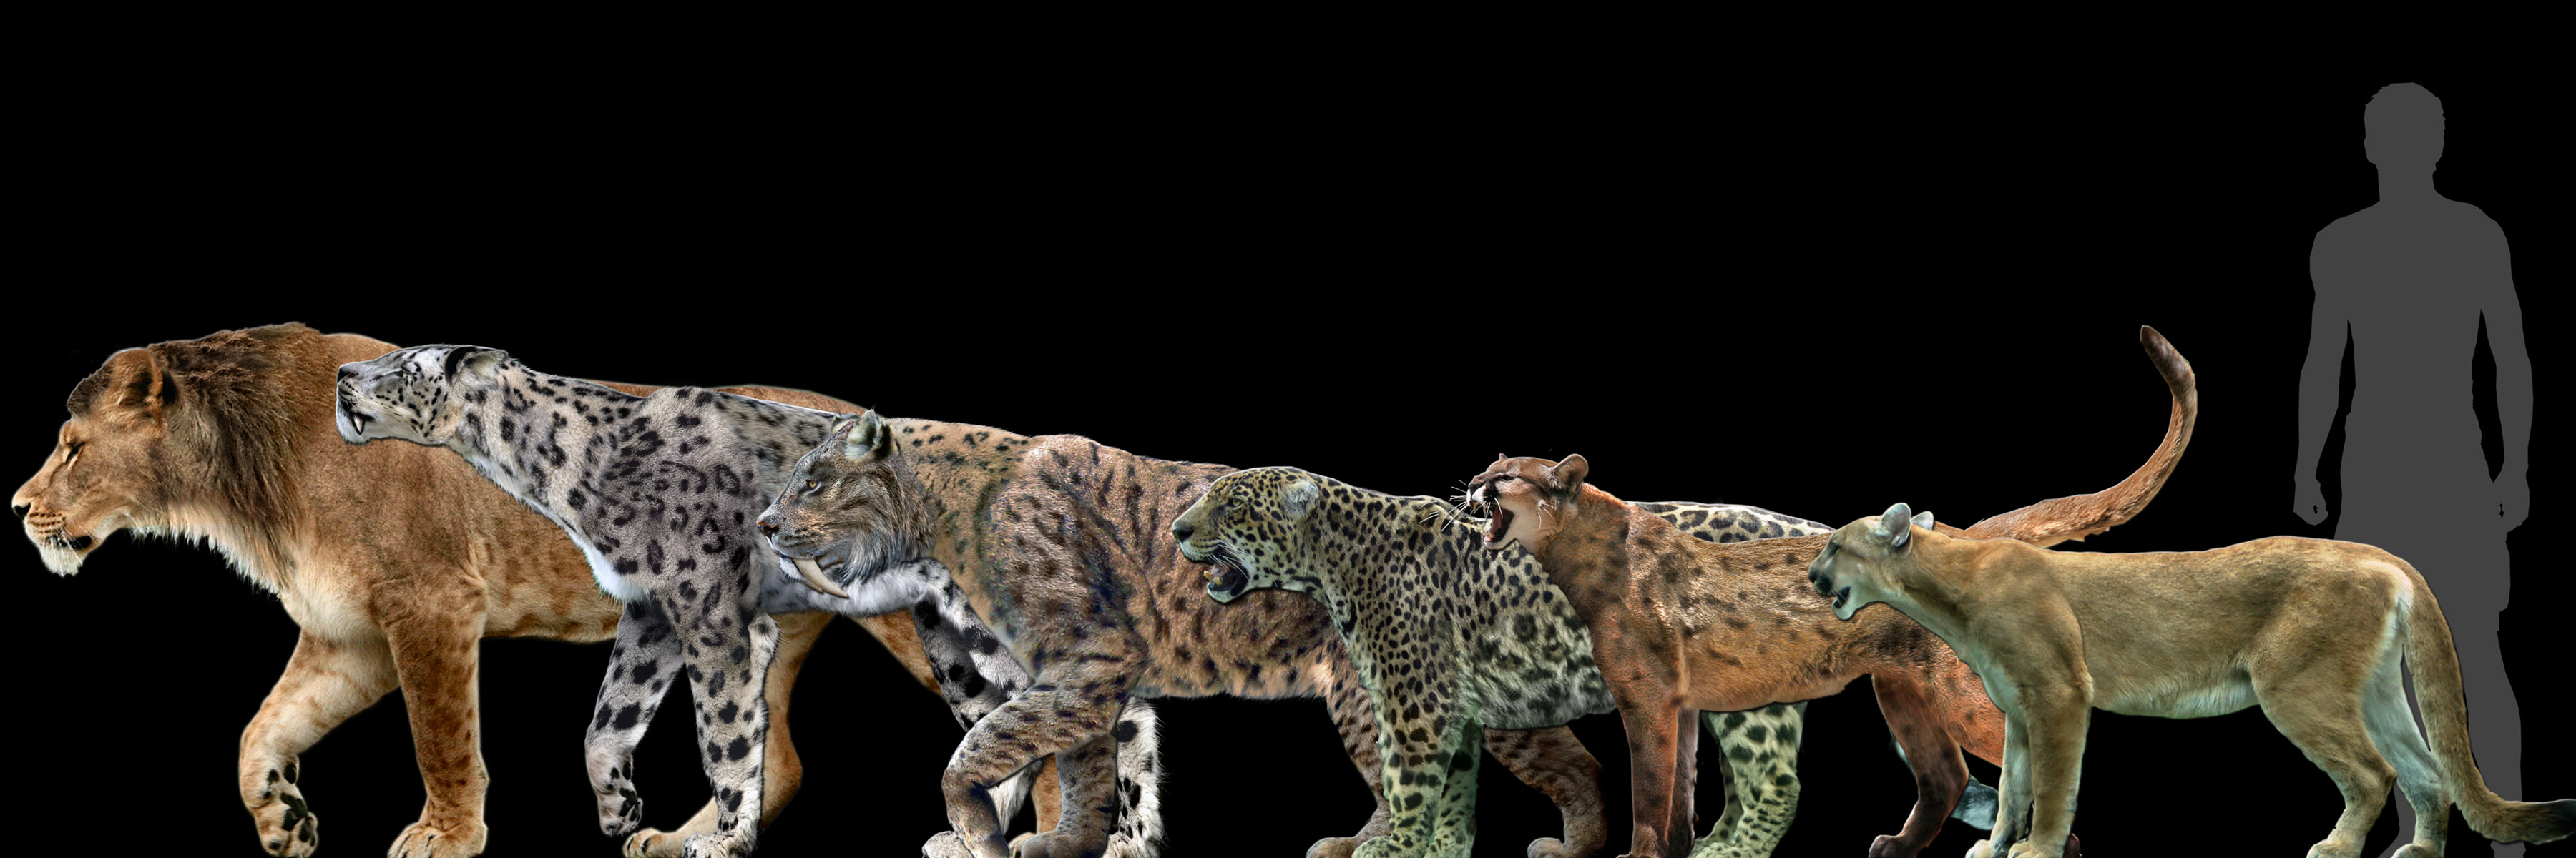 big_cats____into_big_poster__by_danthema